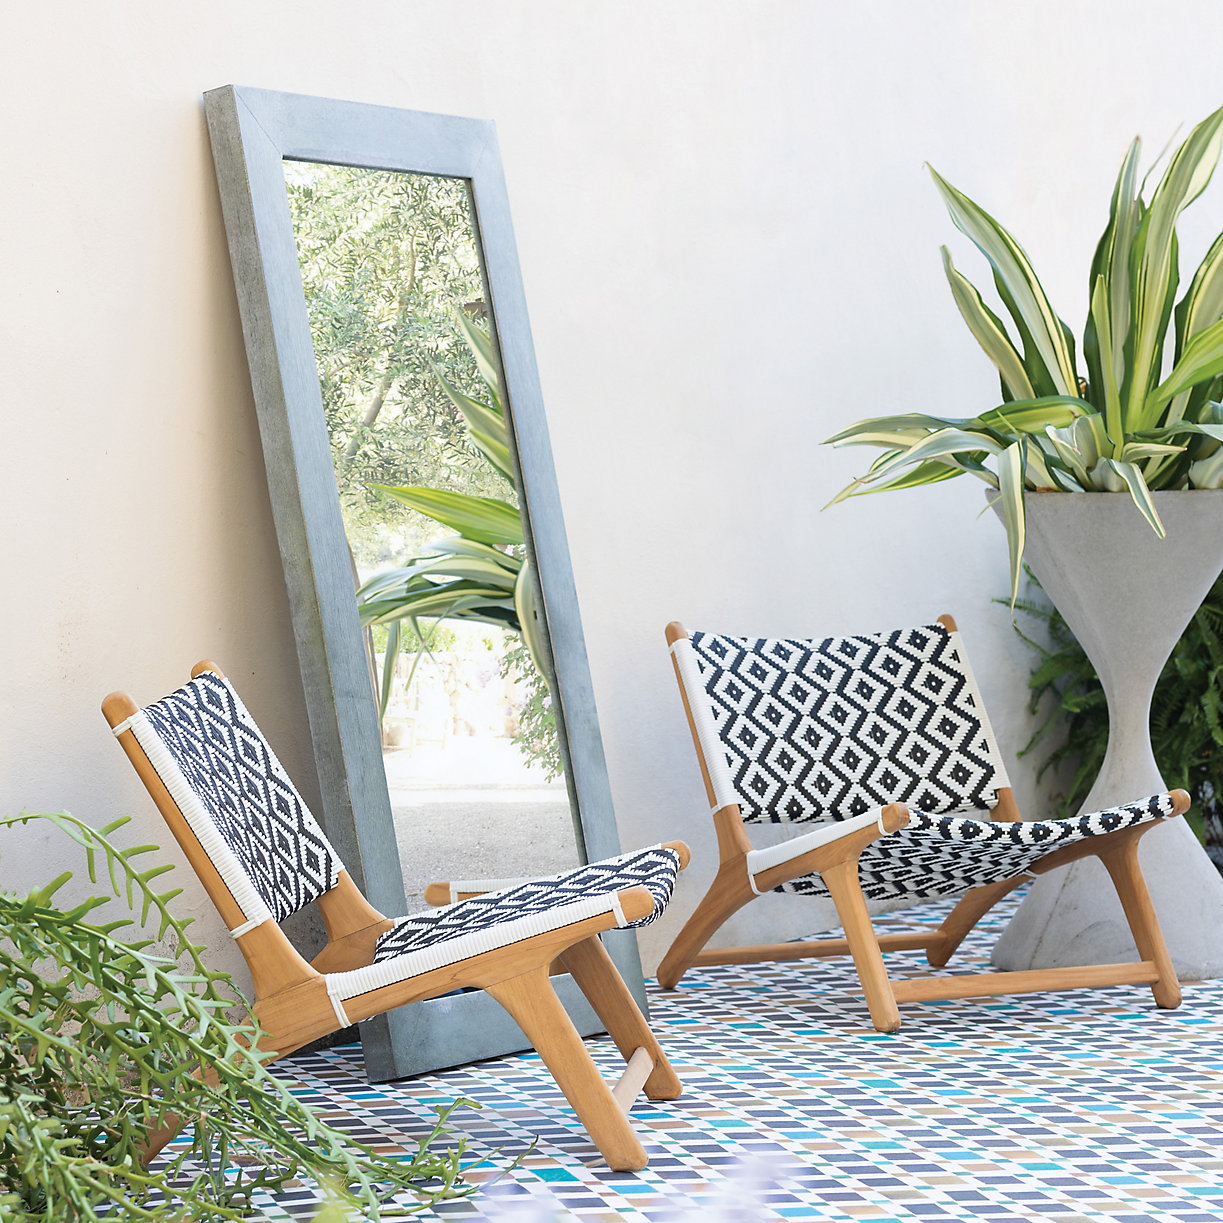 Outdoor styling and furnishings from Terrain